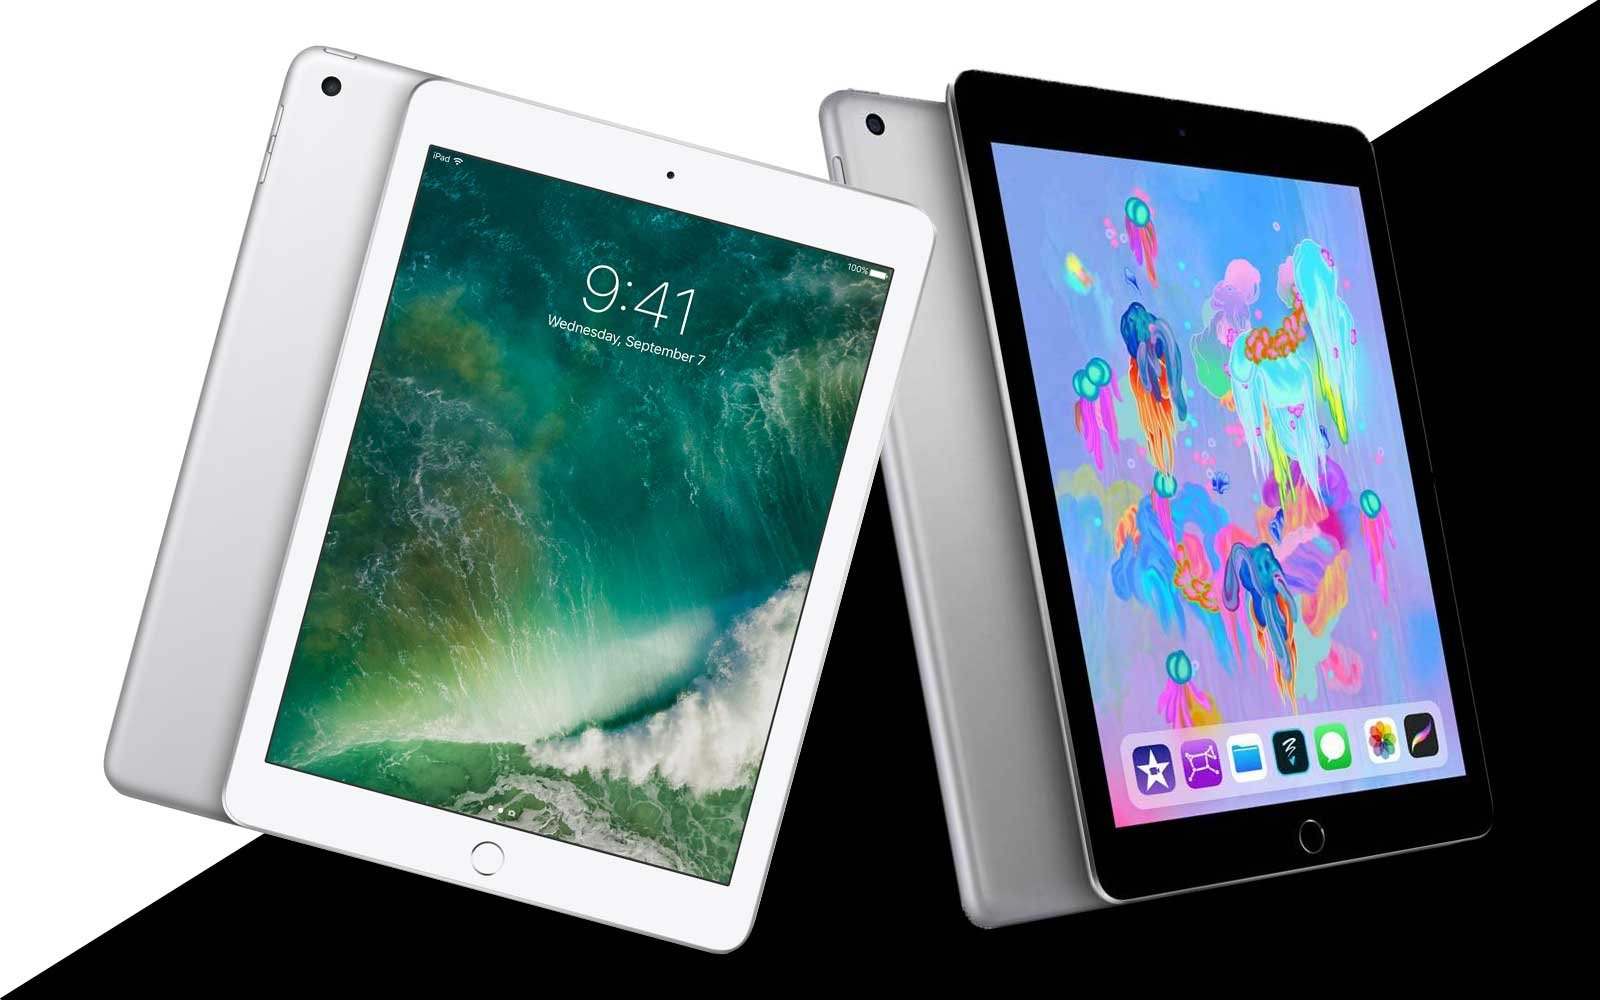 Best Cyber Monday 2018 Deals on Apple iPad, iPhone and Apple Watch